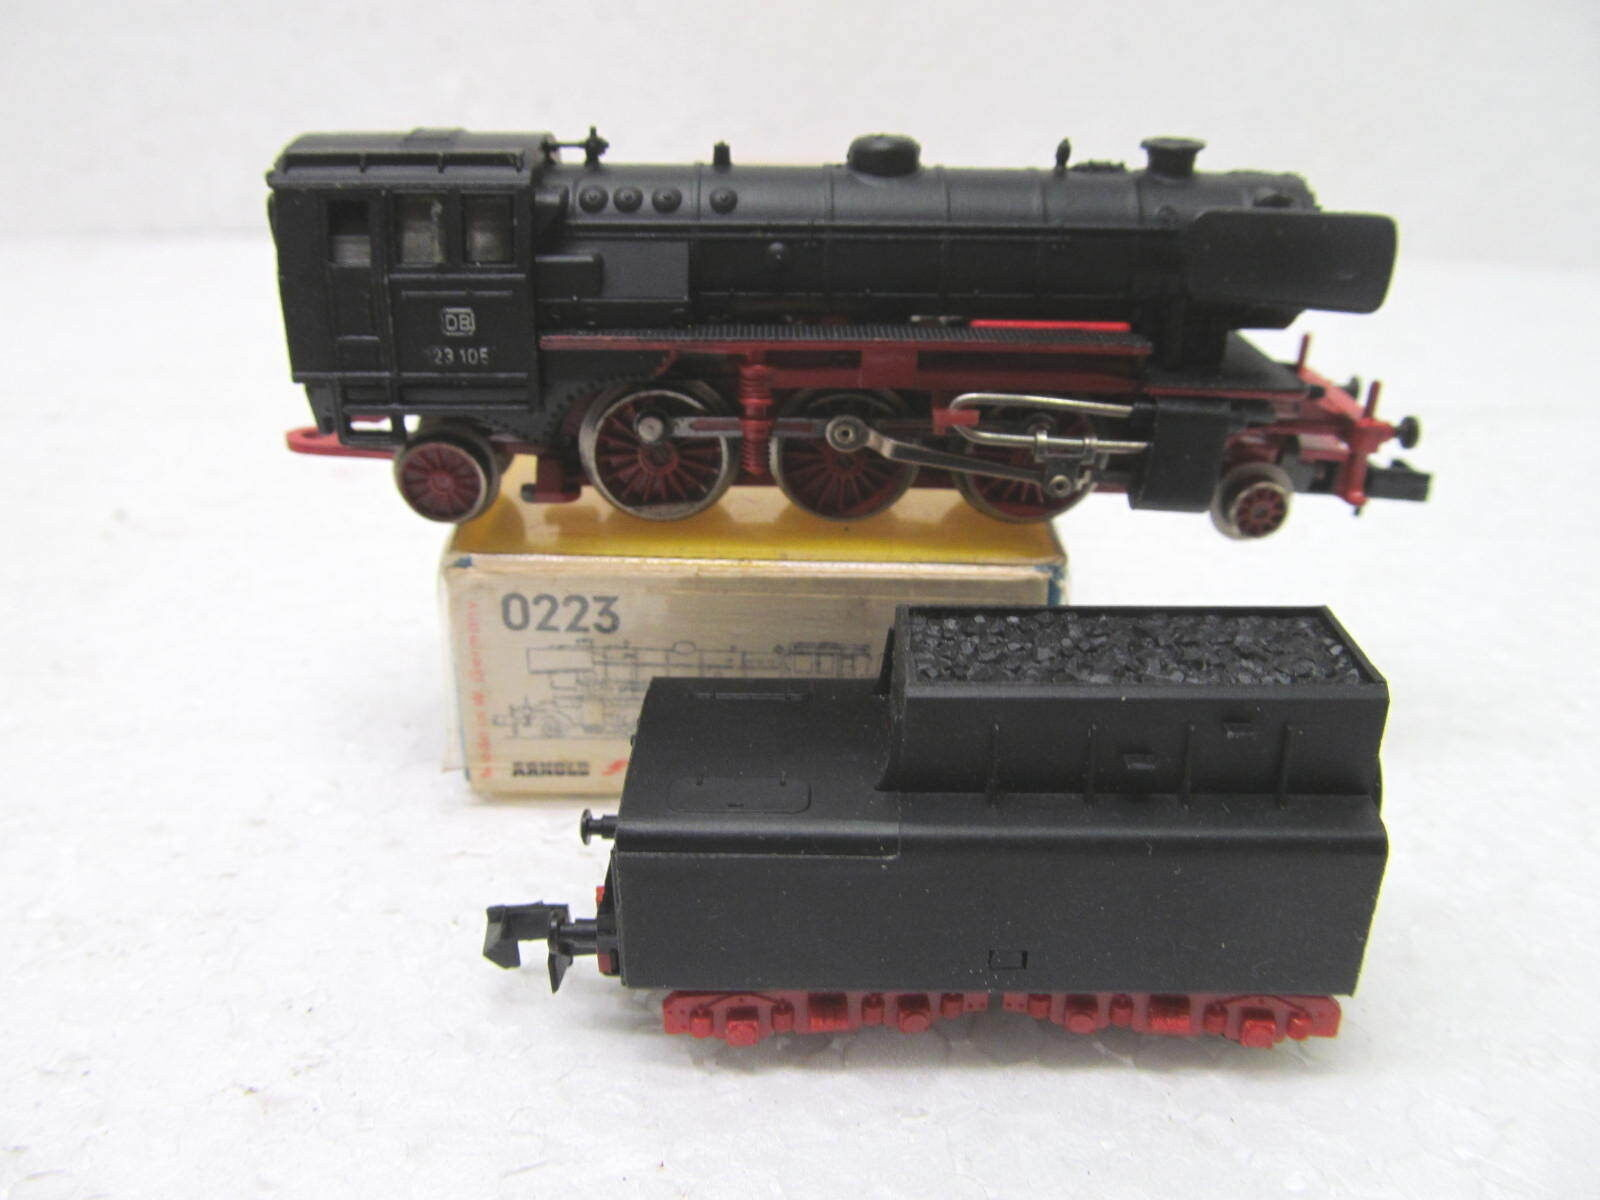 Mes-39077 Arnold 0223 SPN Steam Locomotive DB 23 105 VGC, function tested